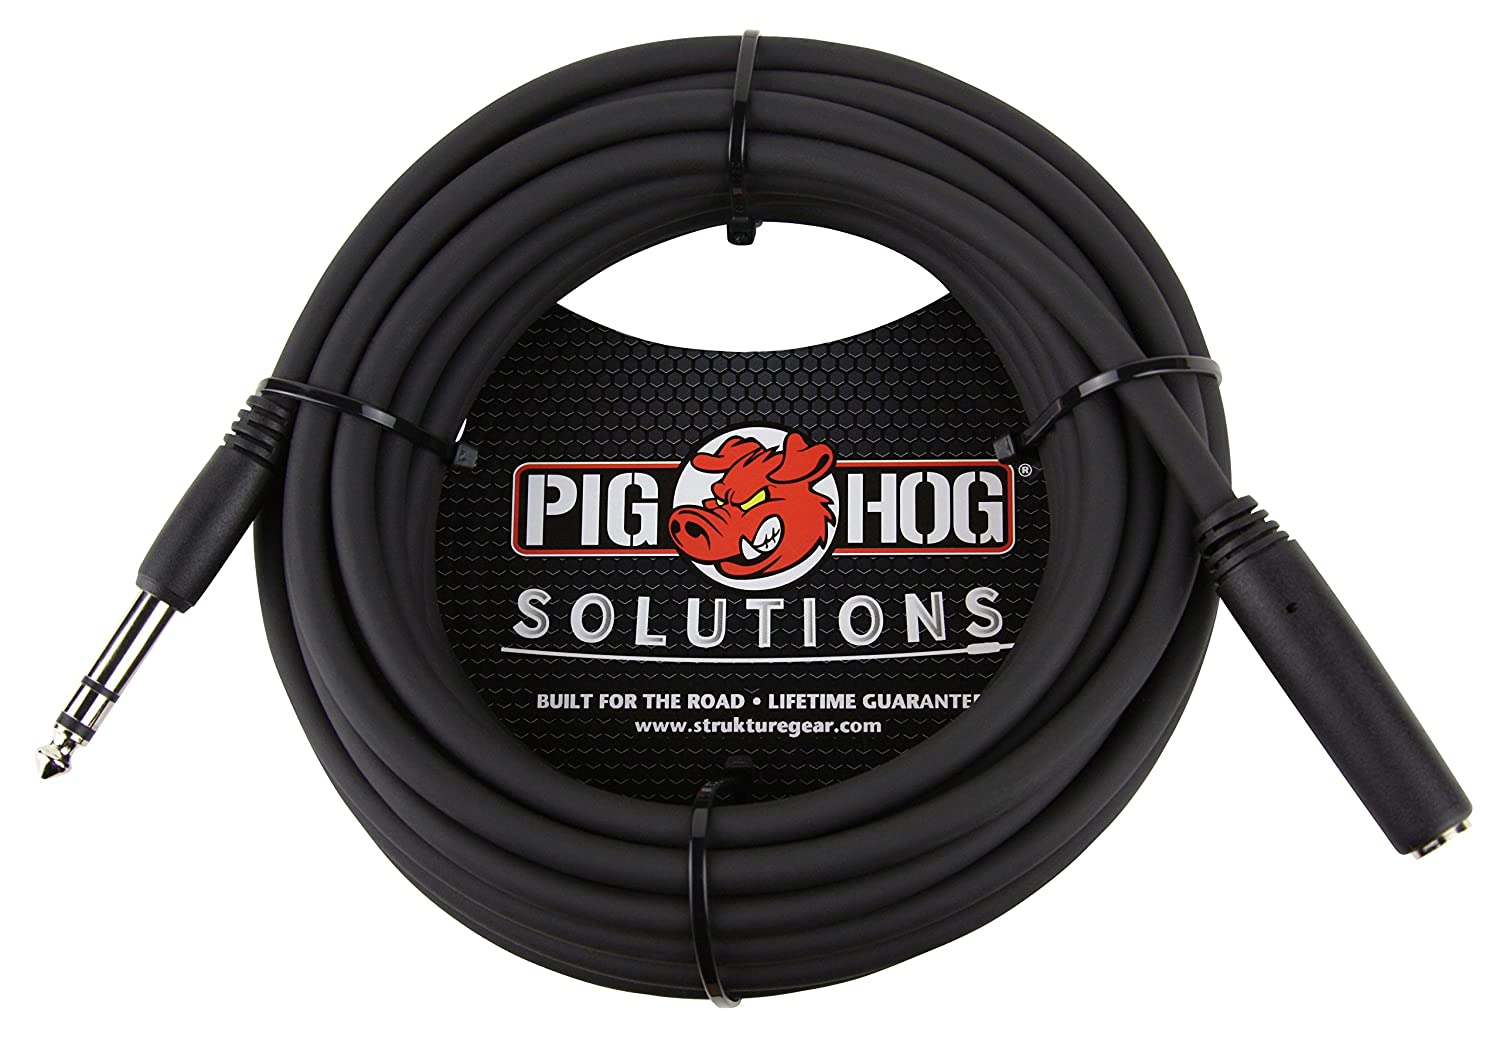 Pig Hog PHX14-25 1/4' TRS (Female) to 1/4' TRS (Male) Headphone Extension Cable, 25 feet PHX1425